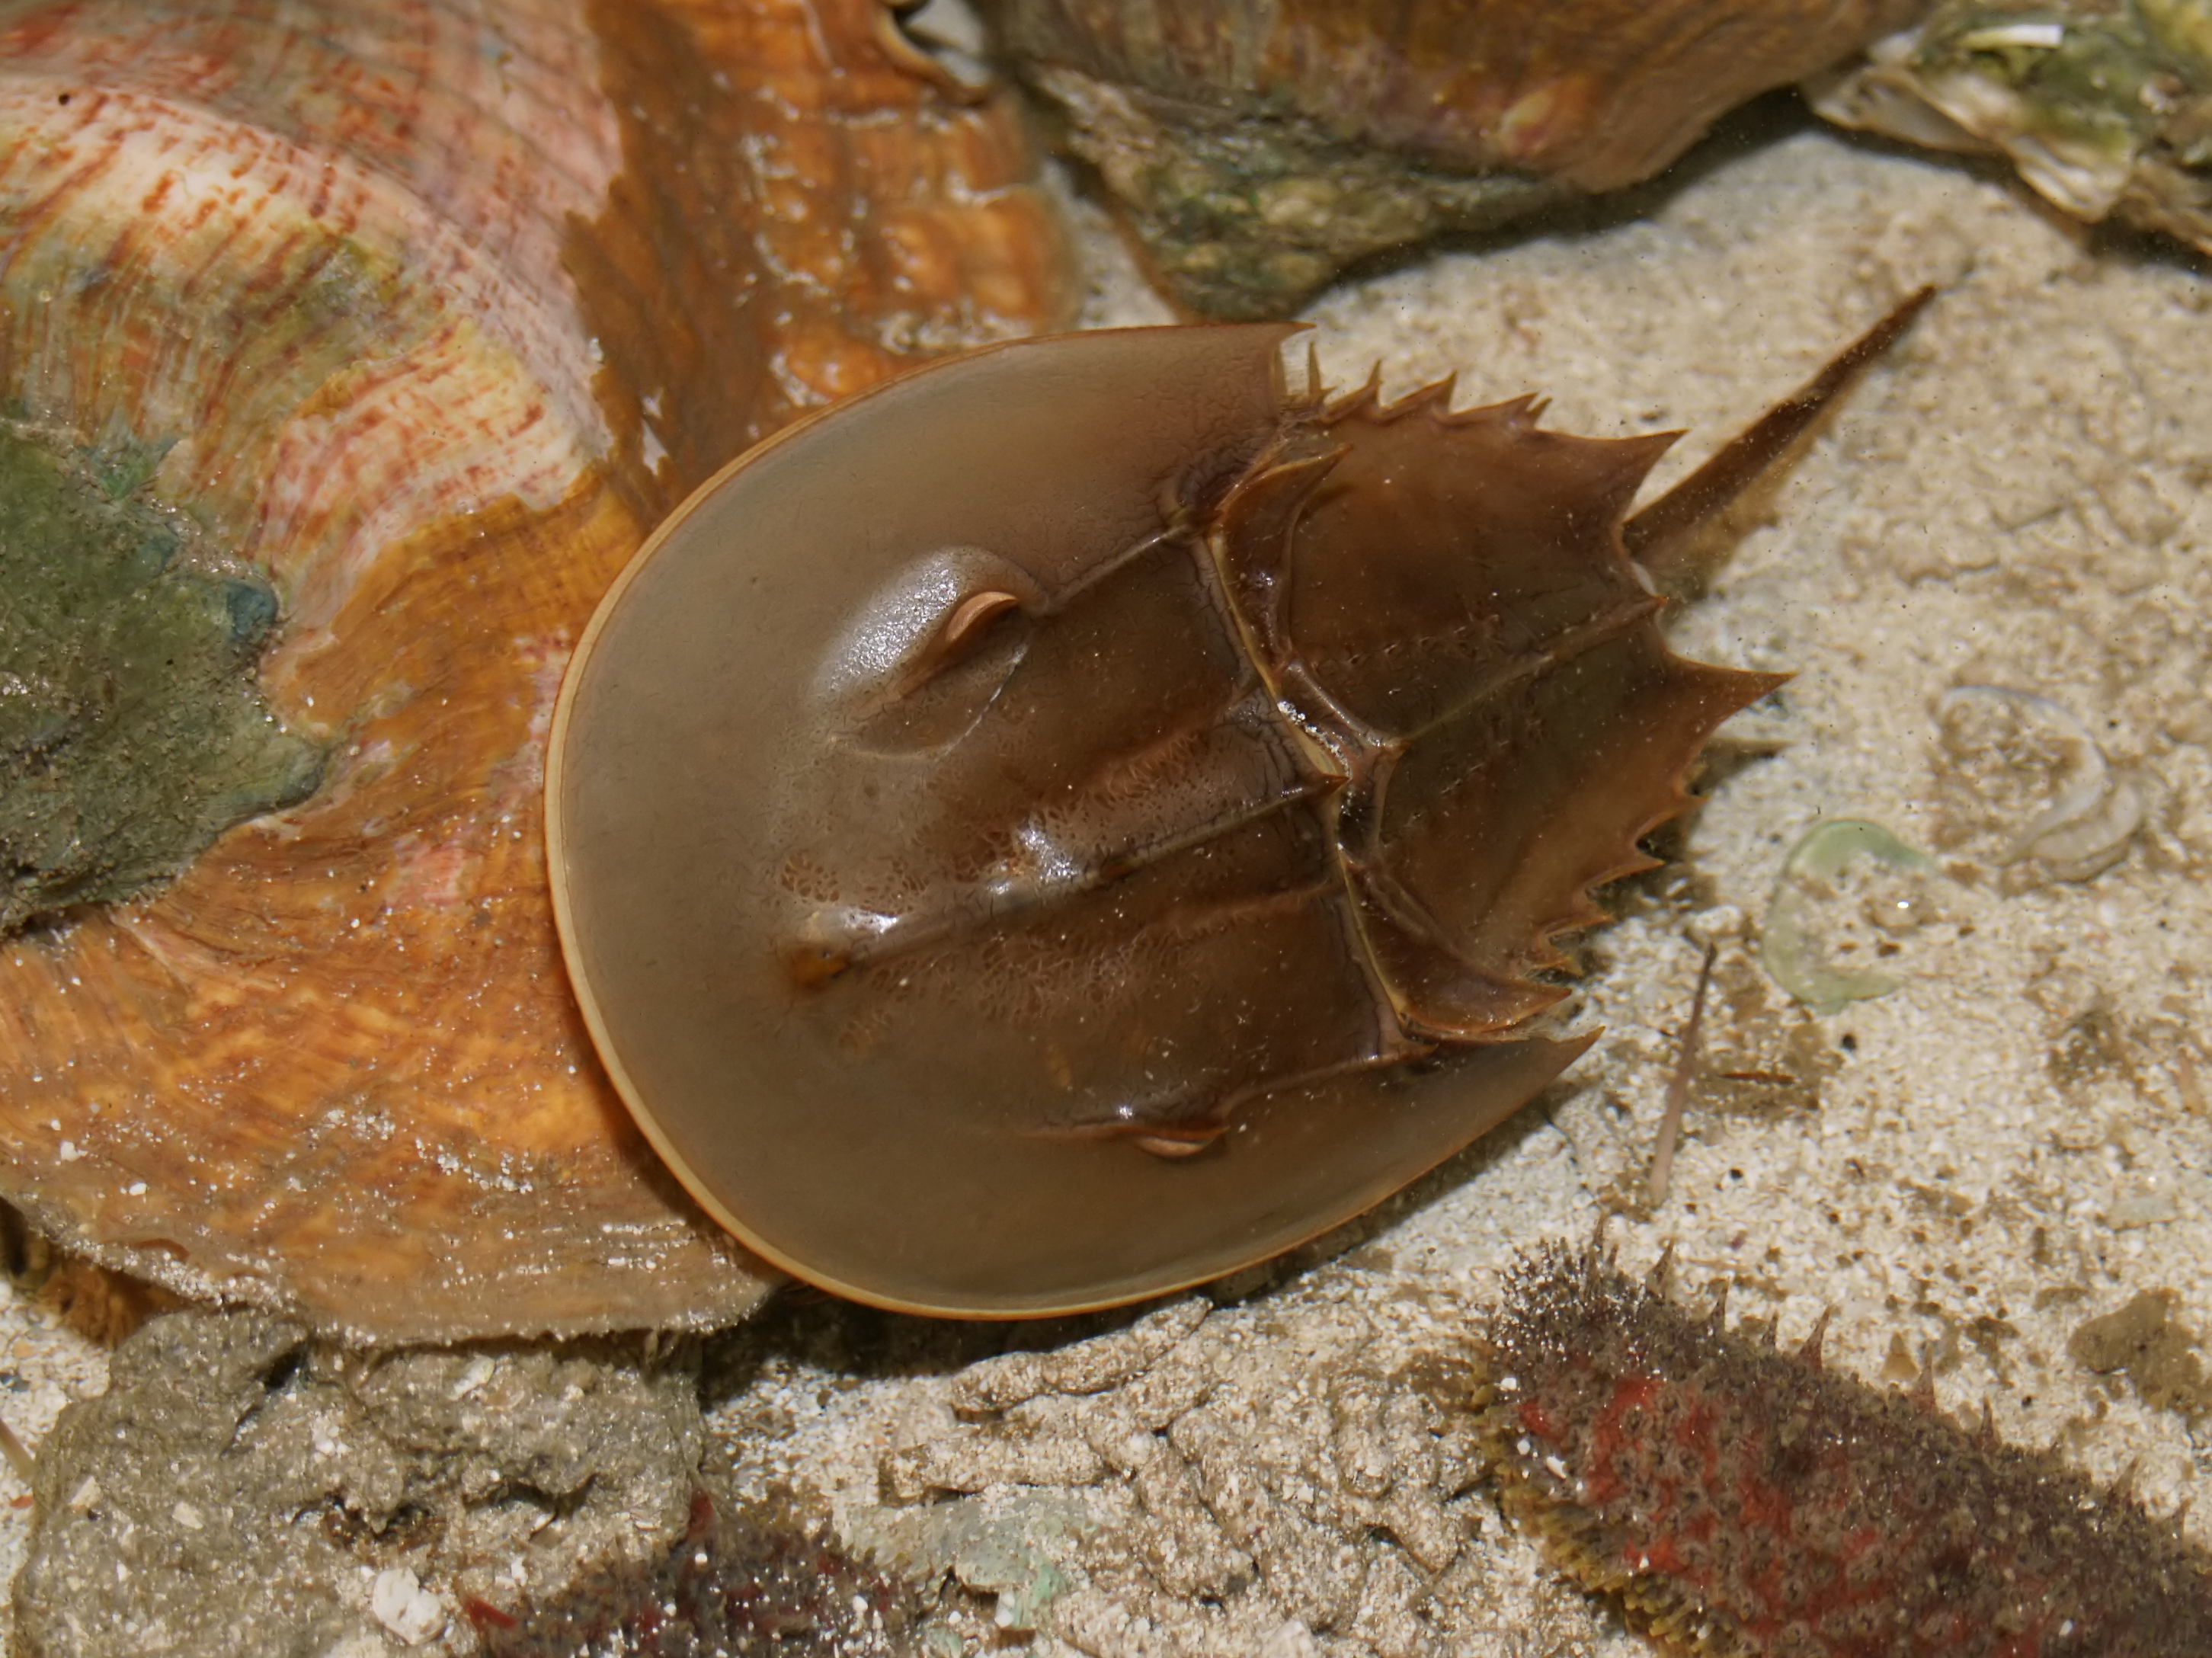 Limulus polyphemus from Wikipedia